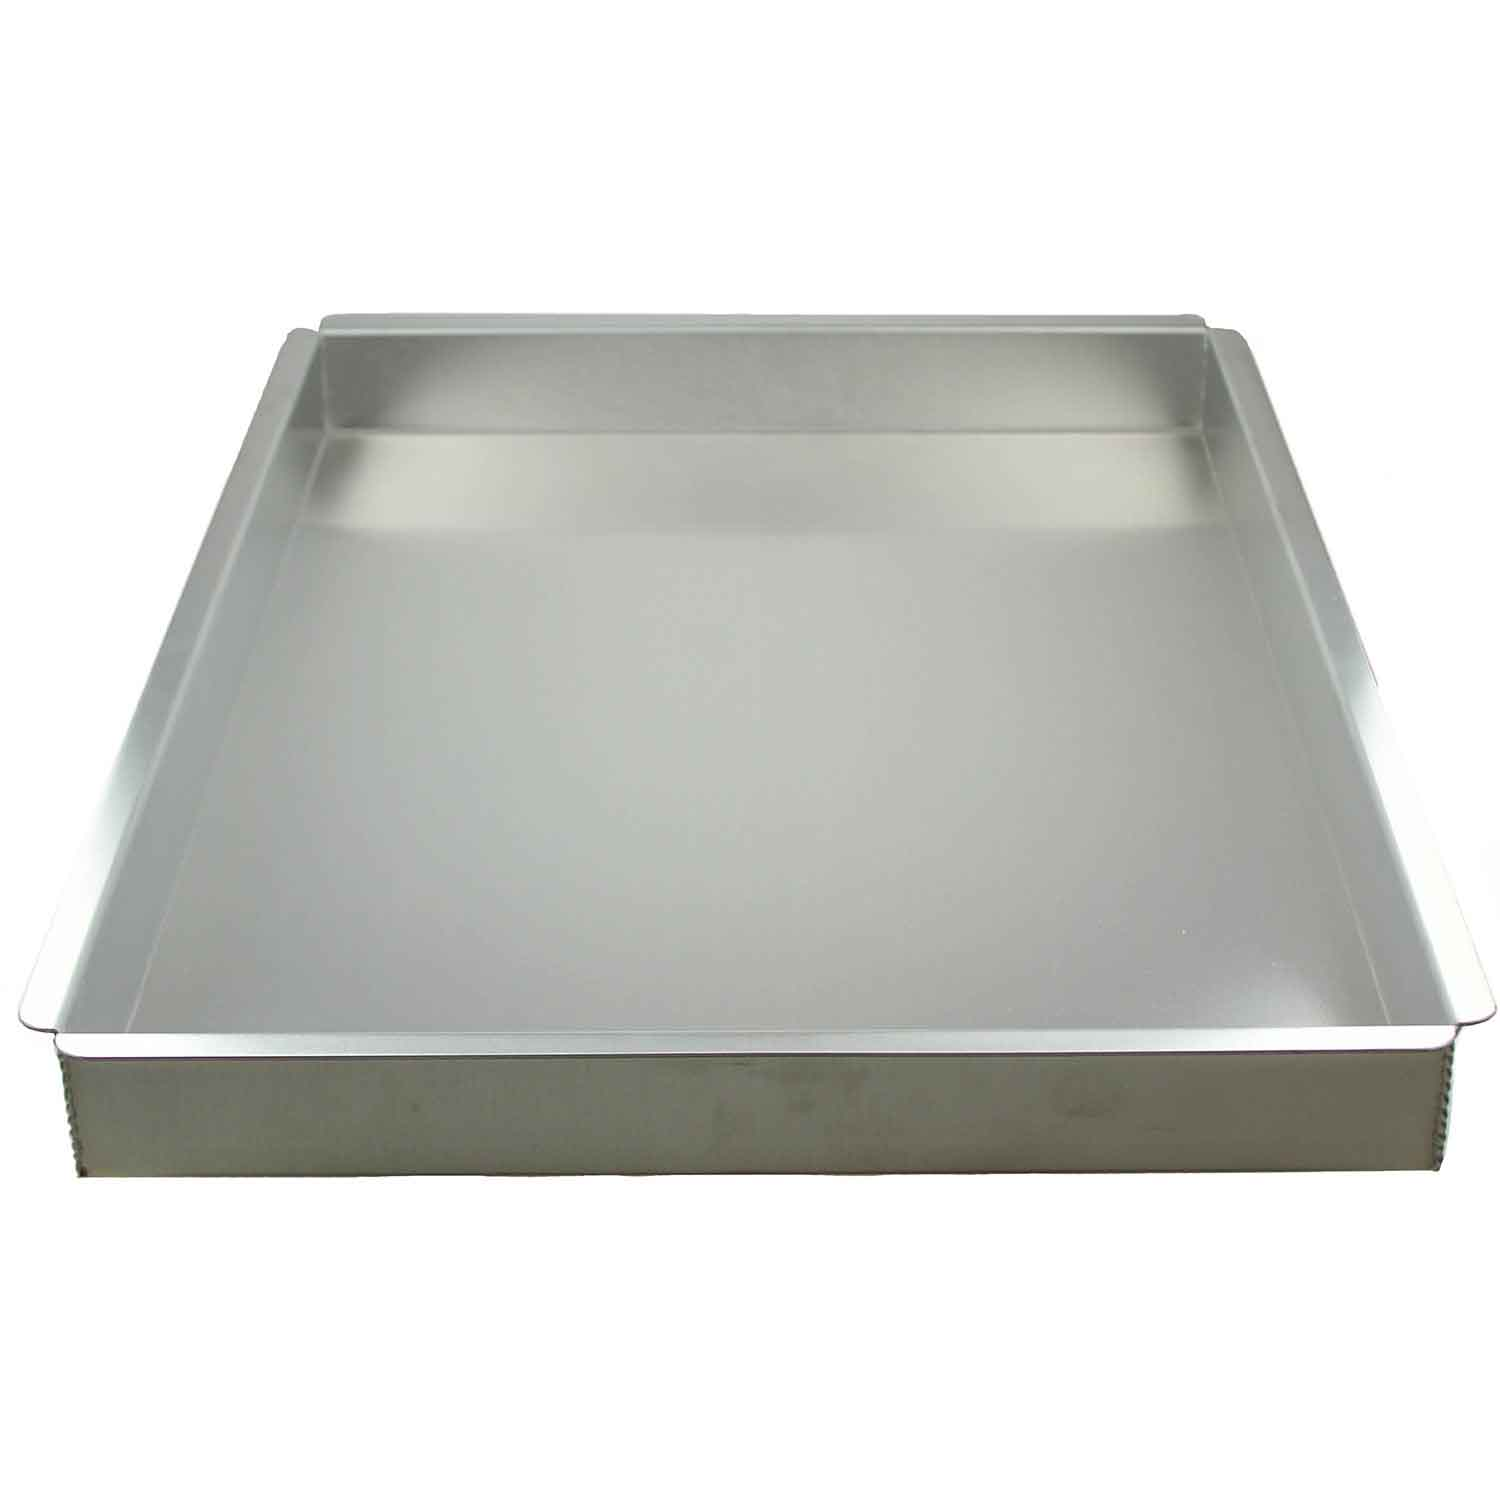 "16 X 24 x 2"" Full Sheet Cake Pan"